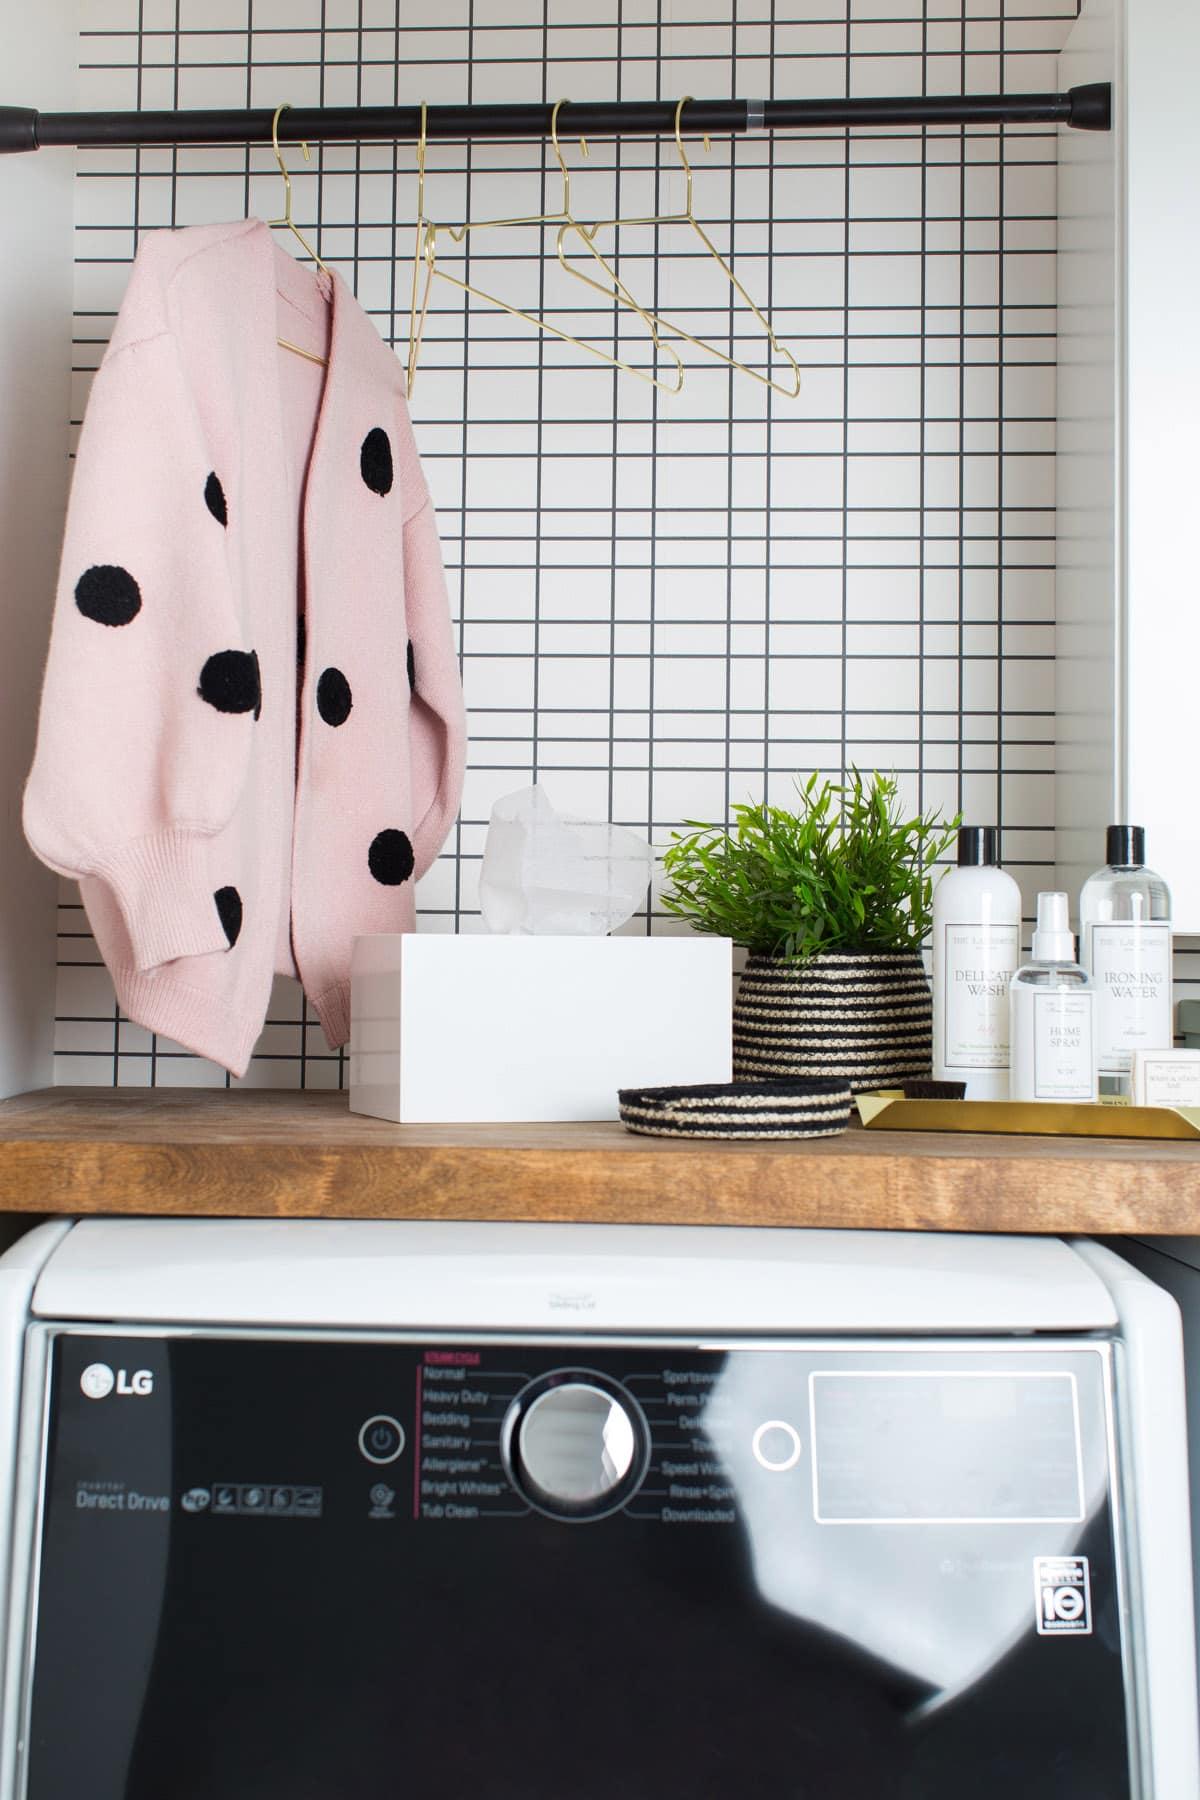 Big Reveal: Before & After of our Laundry Room Makeover + 2 Minute DIY Dryer Sheet Dispenser by top Houston lifestyle blogger Ashley Rose of Sugar & Cloth